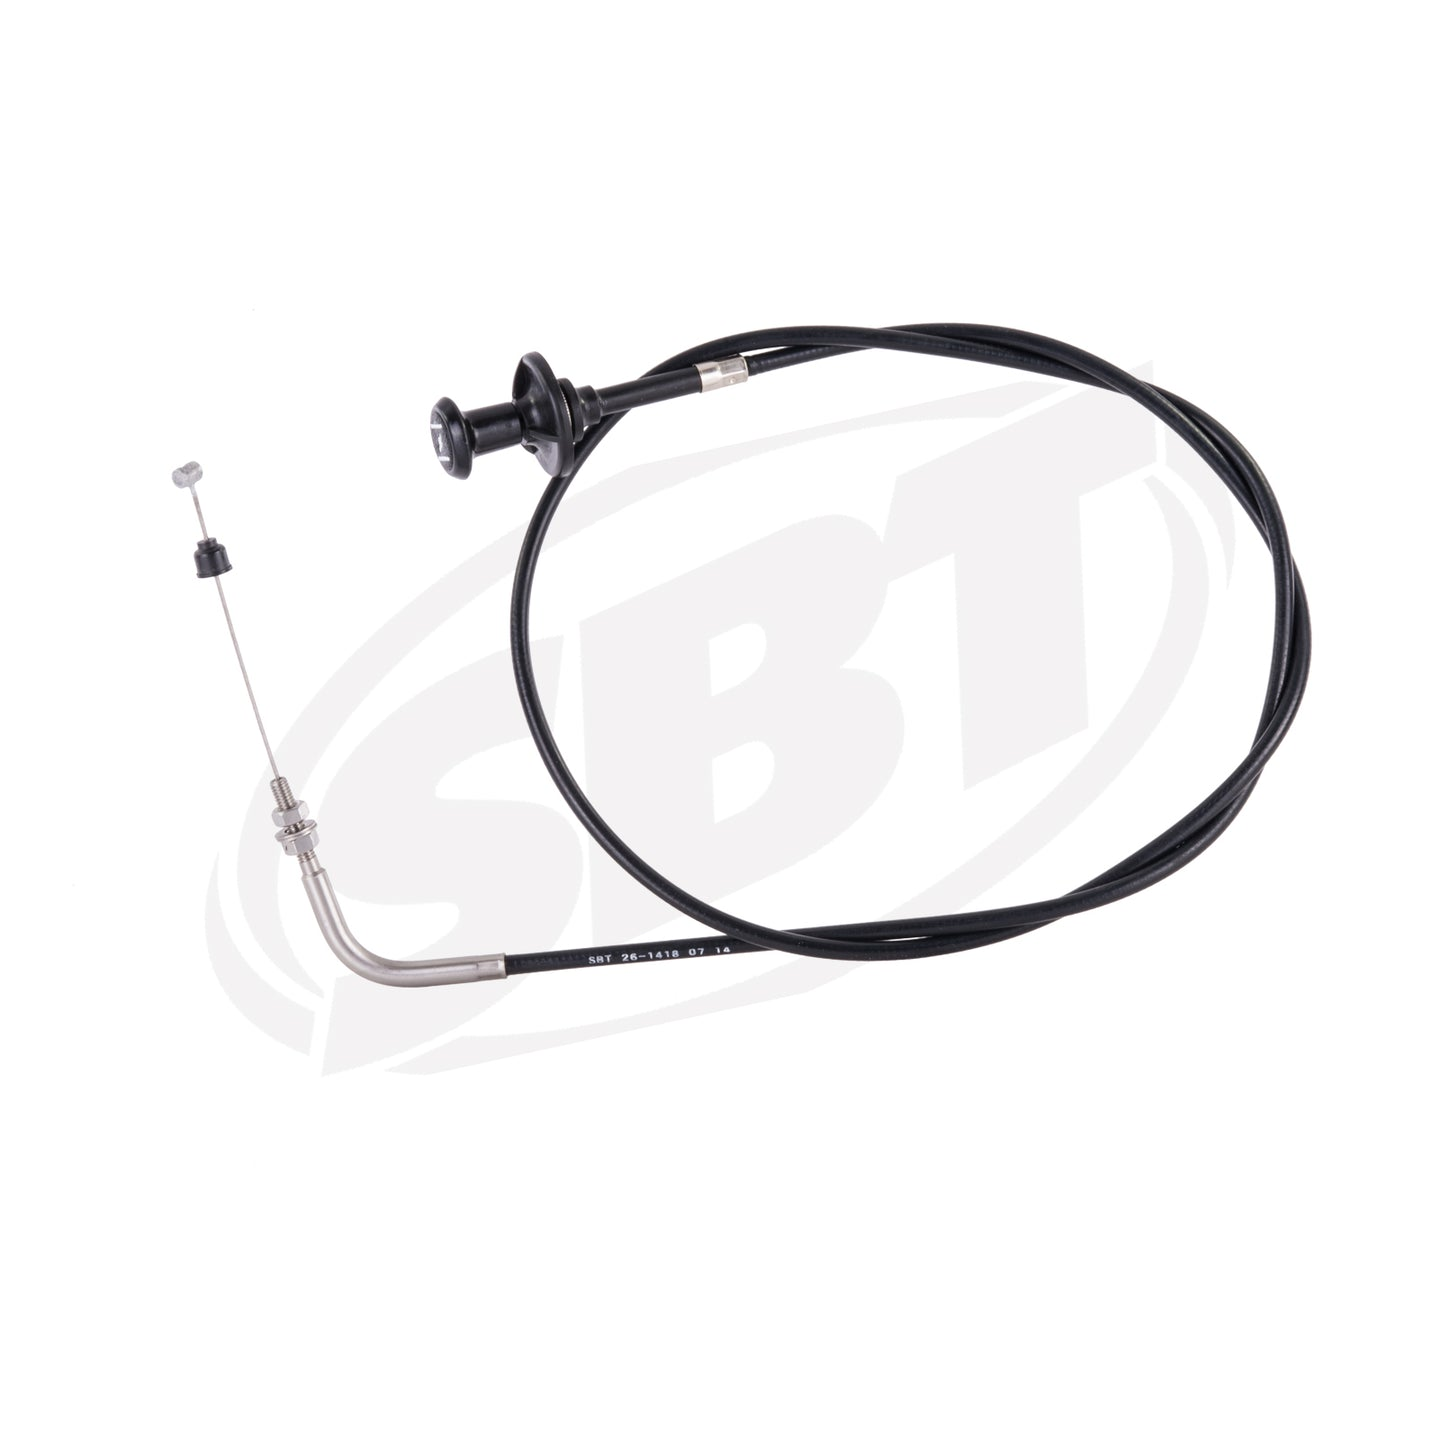 SBT Yamaha Choke Cable Wave Runner / GP 760 GP7-U7242-01-00 1997 1998 1999 2000